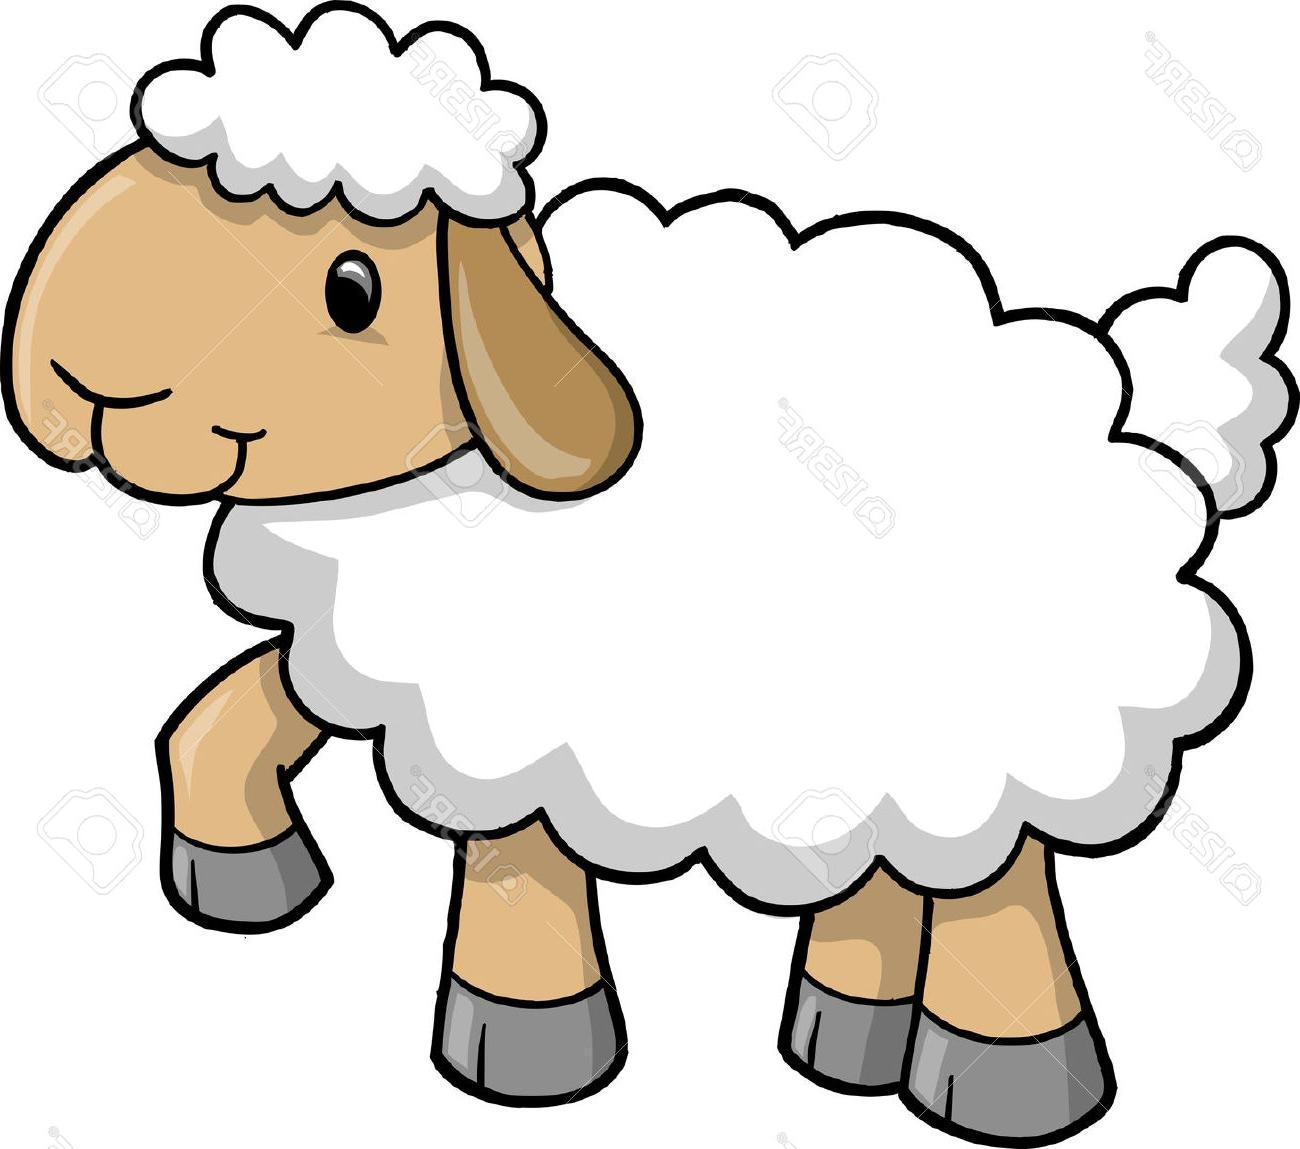 Sheep clipart. Unique gallery digital collection